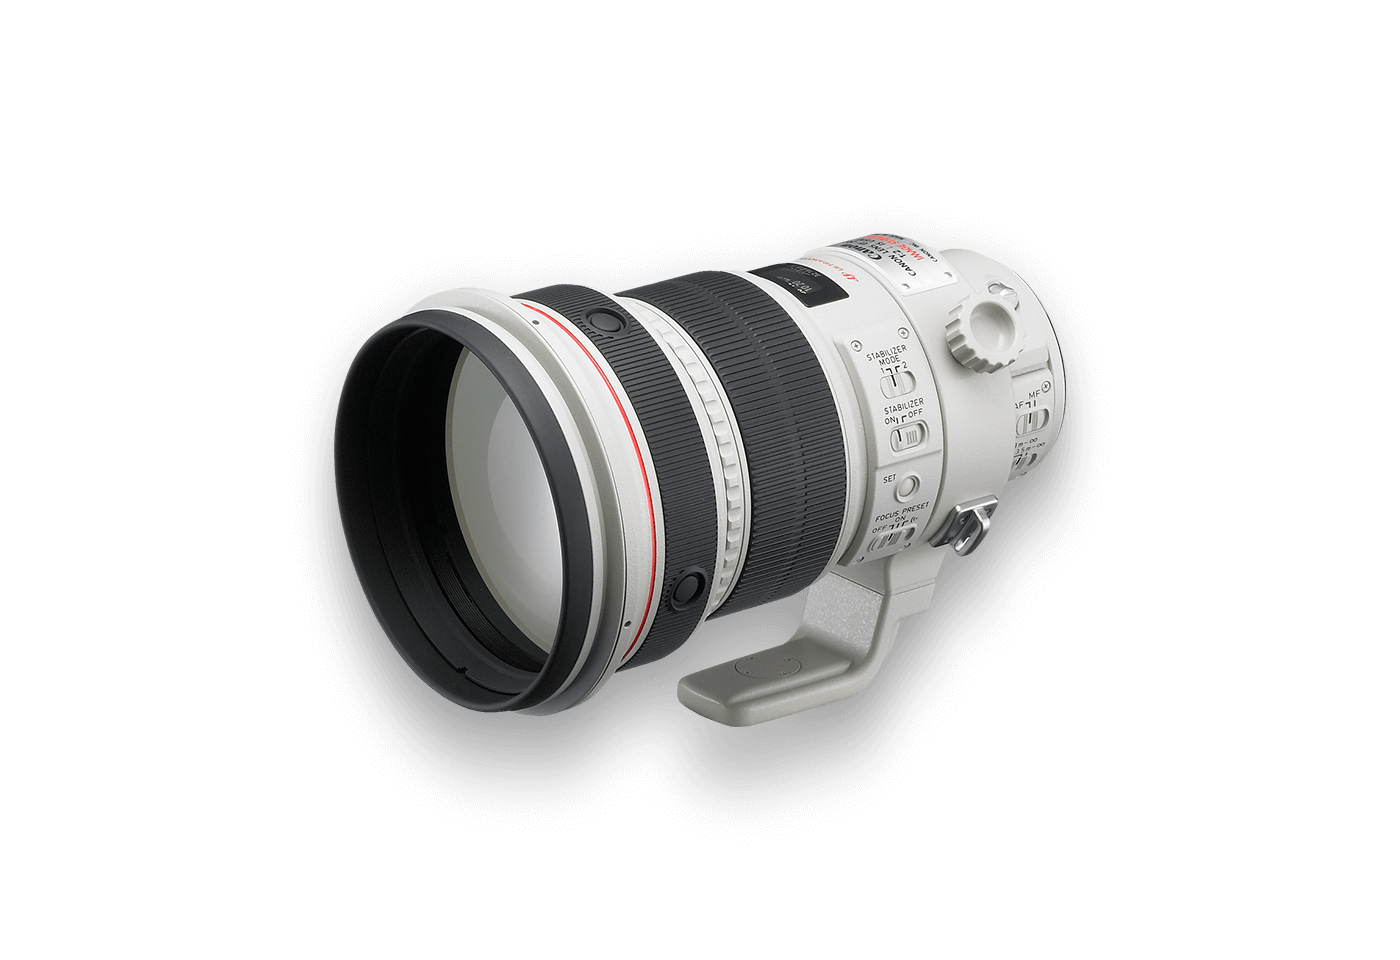 EF 200mm f/2L IS USM lens